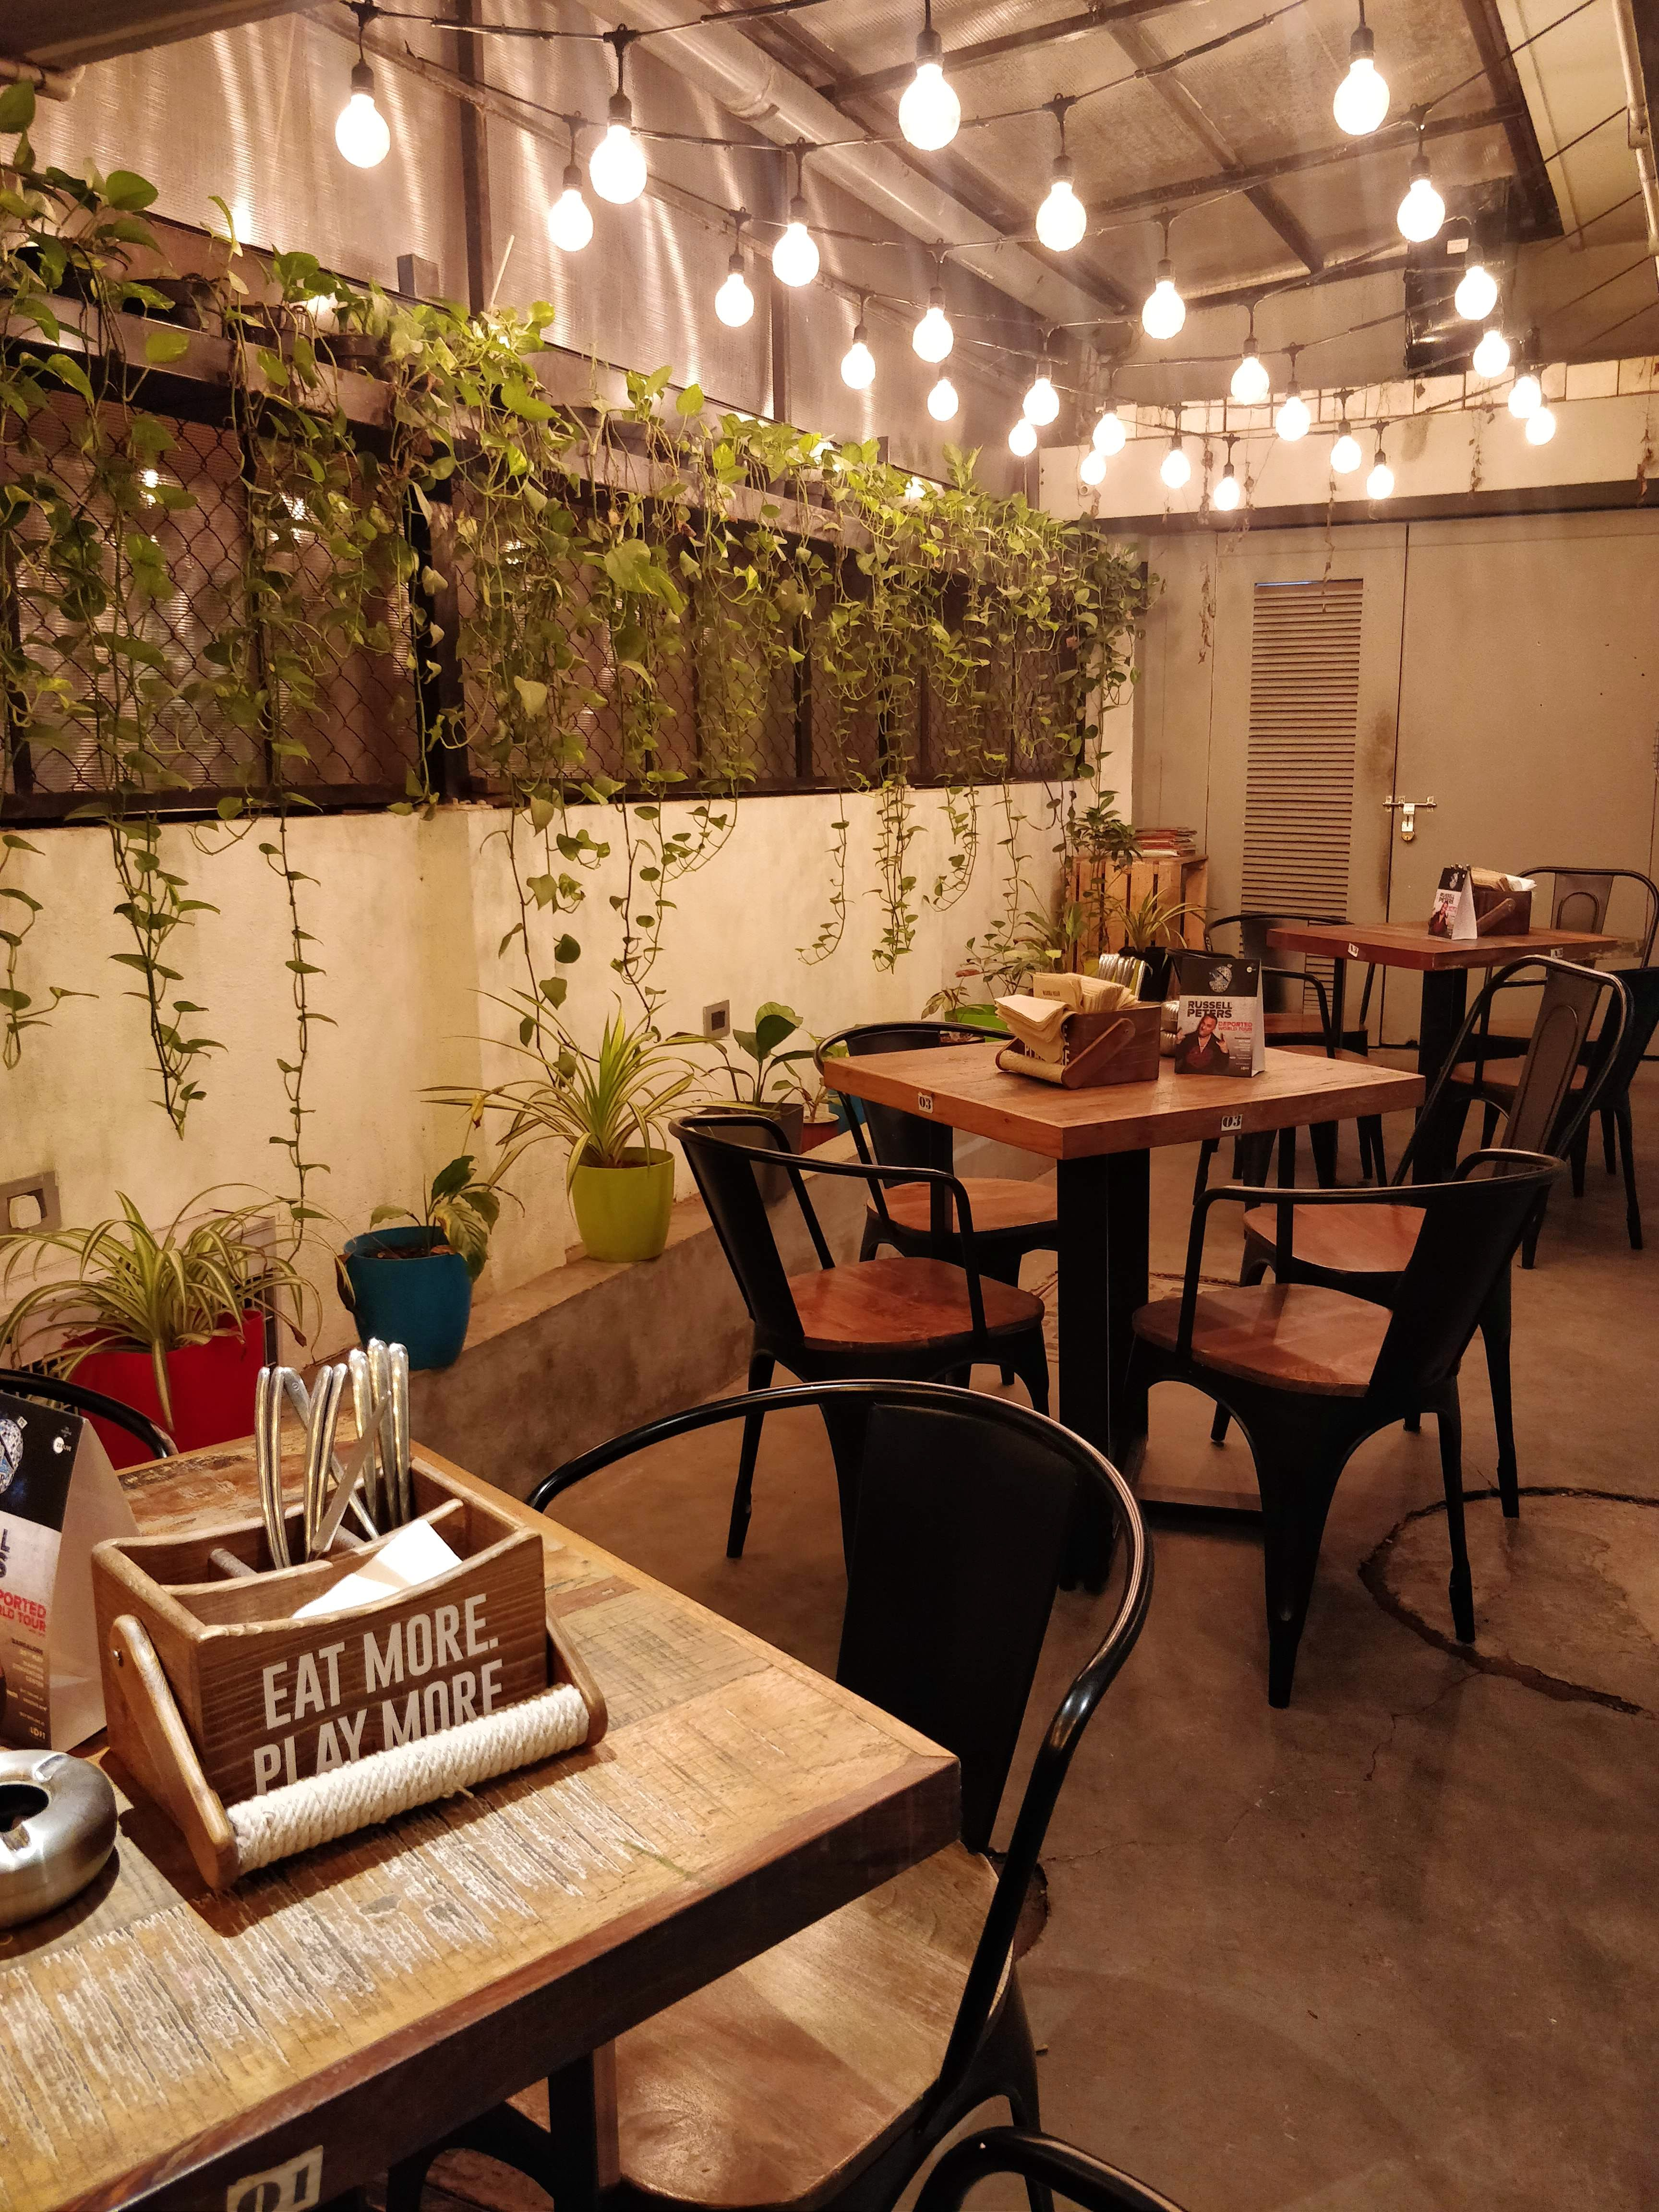 Restaurant,Interior design,Property,Room,Building,Table,Furniture,Tree,Ceiling,Chair